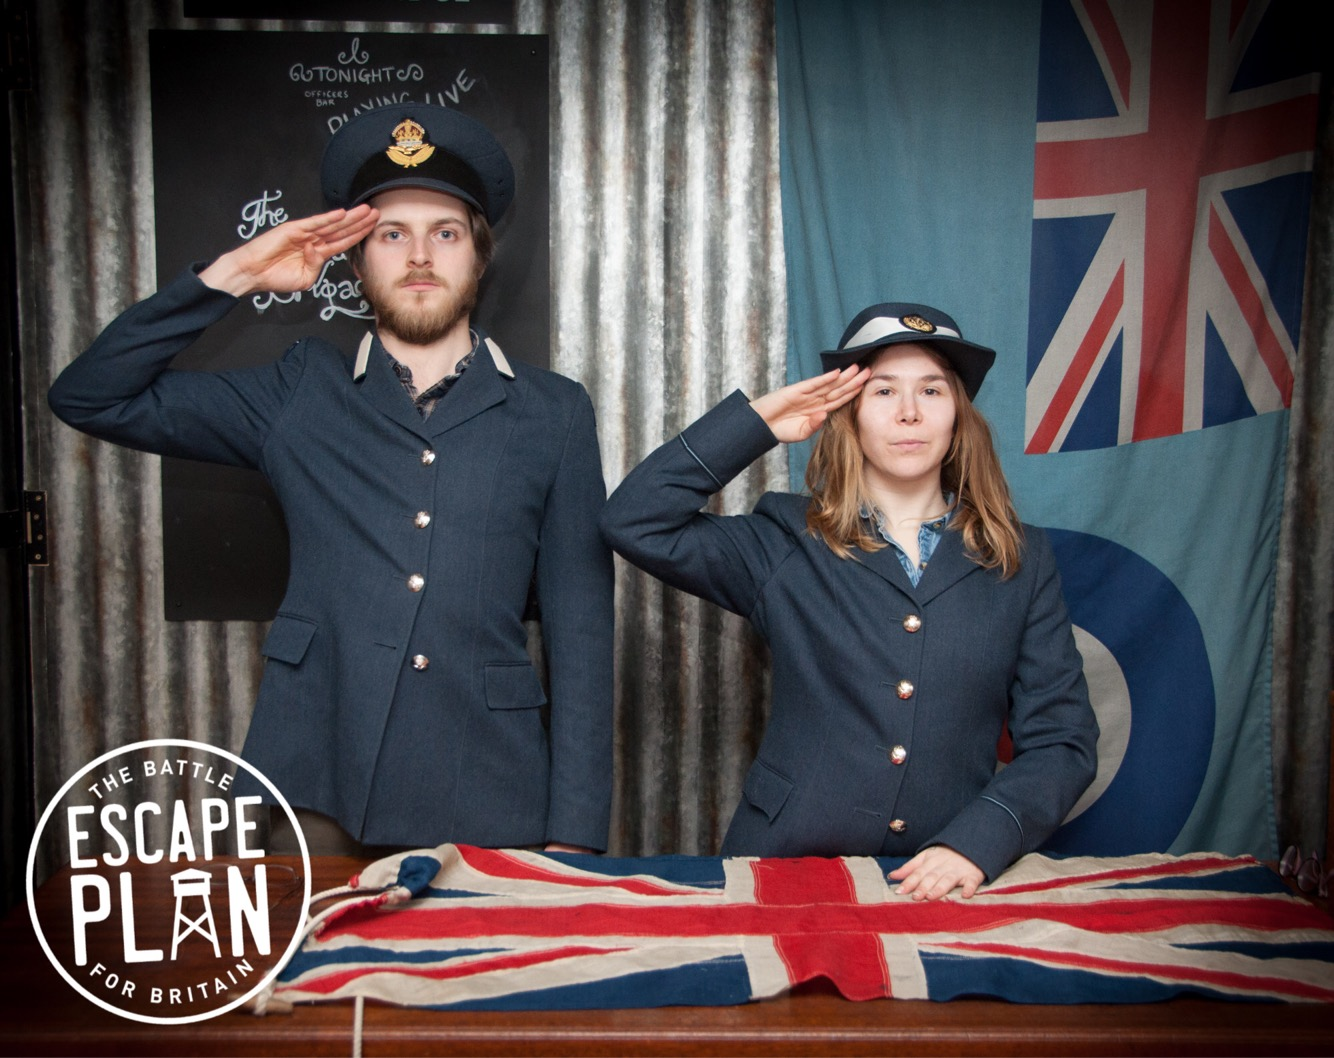 Escape Plan - Battle of Britain - Keep Calm and Carry on